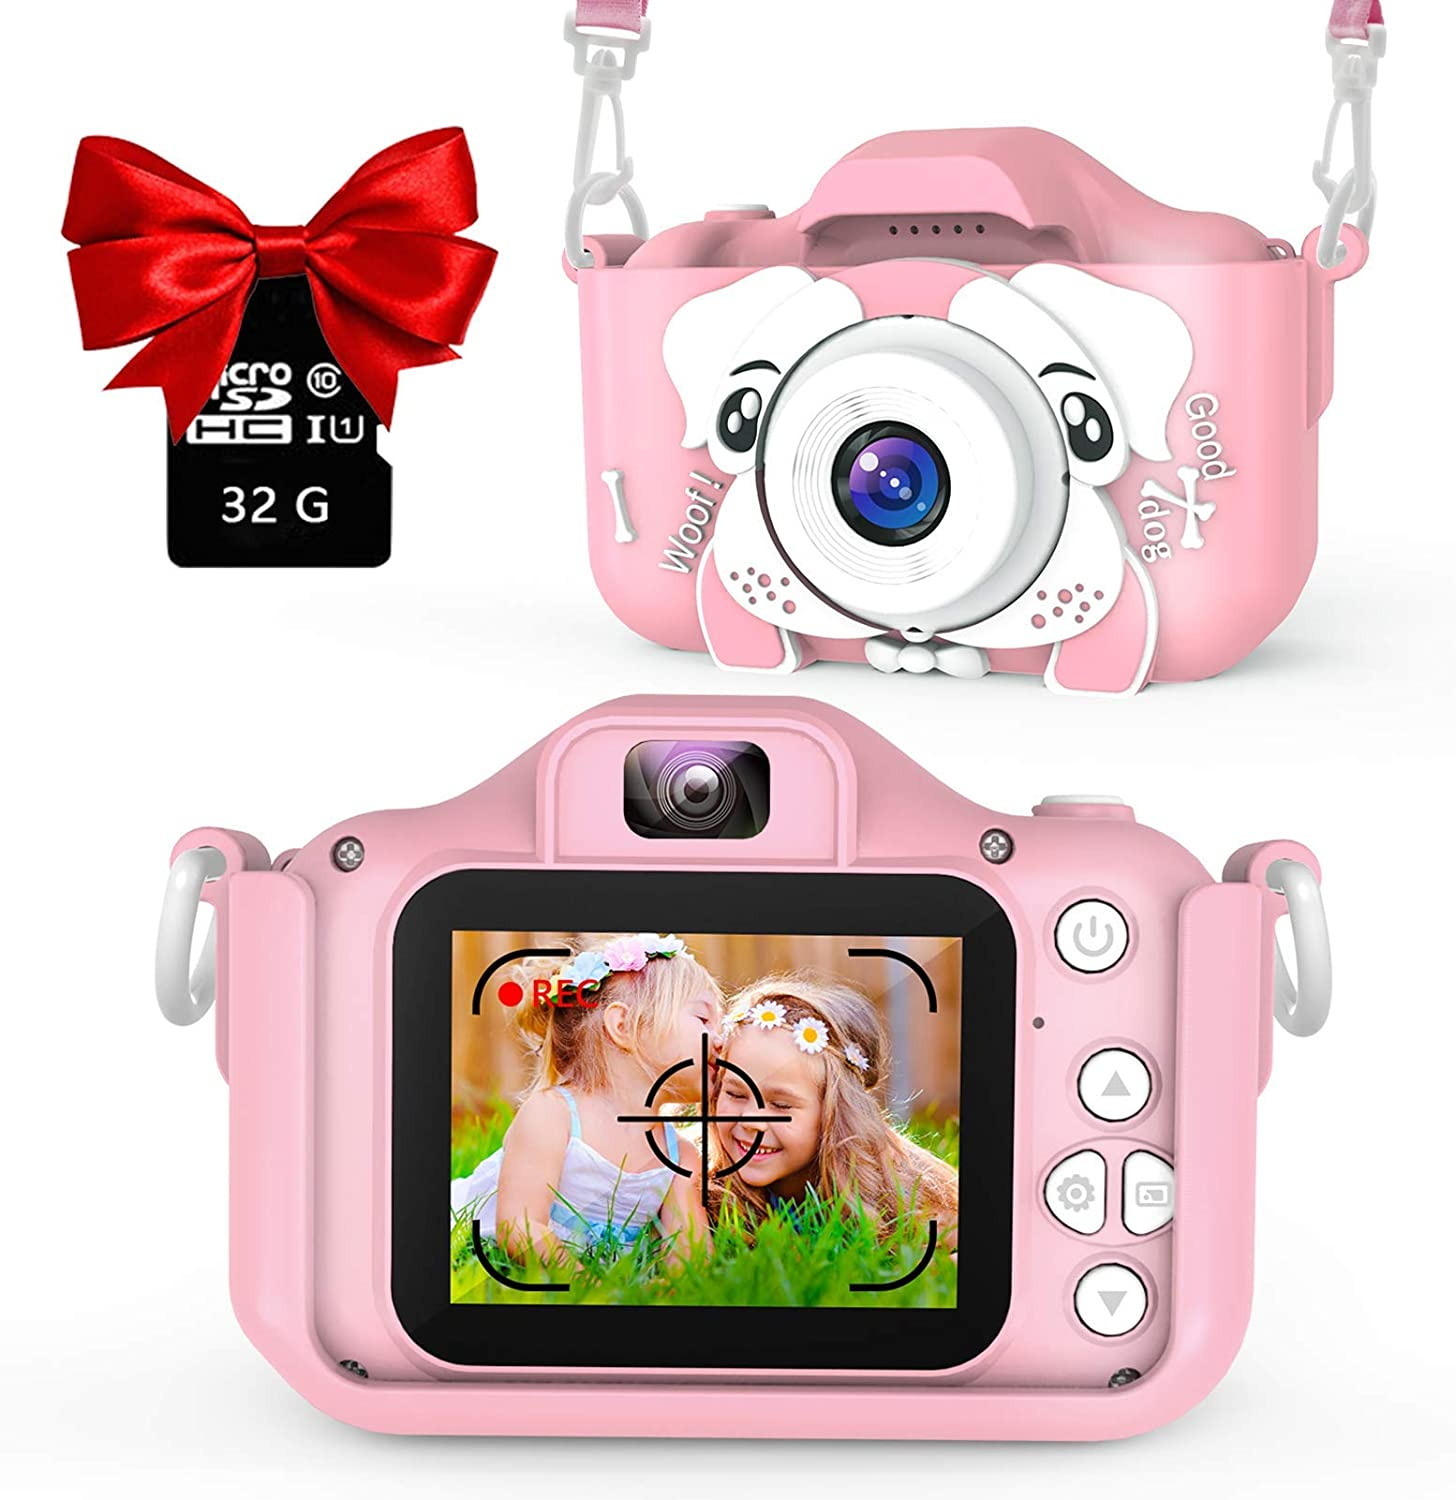 ROYAL WIND Upgrade Kids Selfie Birthday Max 80% OFF Christmas Gifts Max 78% OFF f Camera